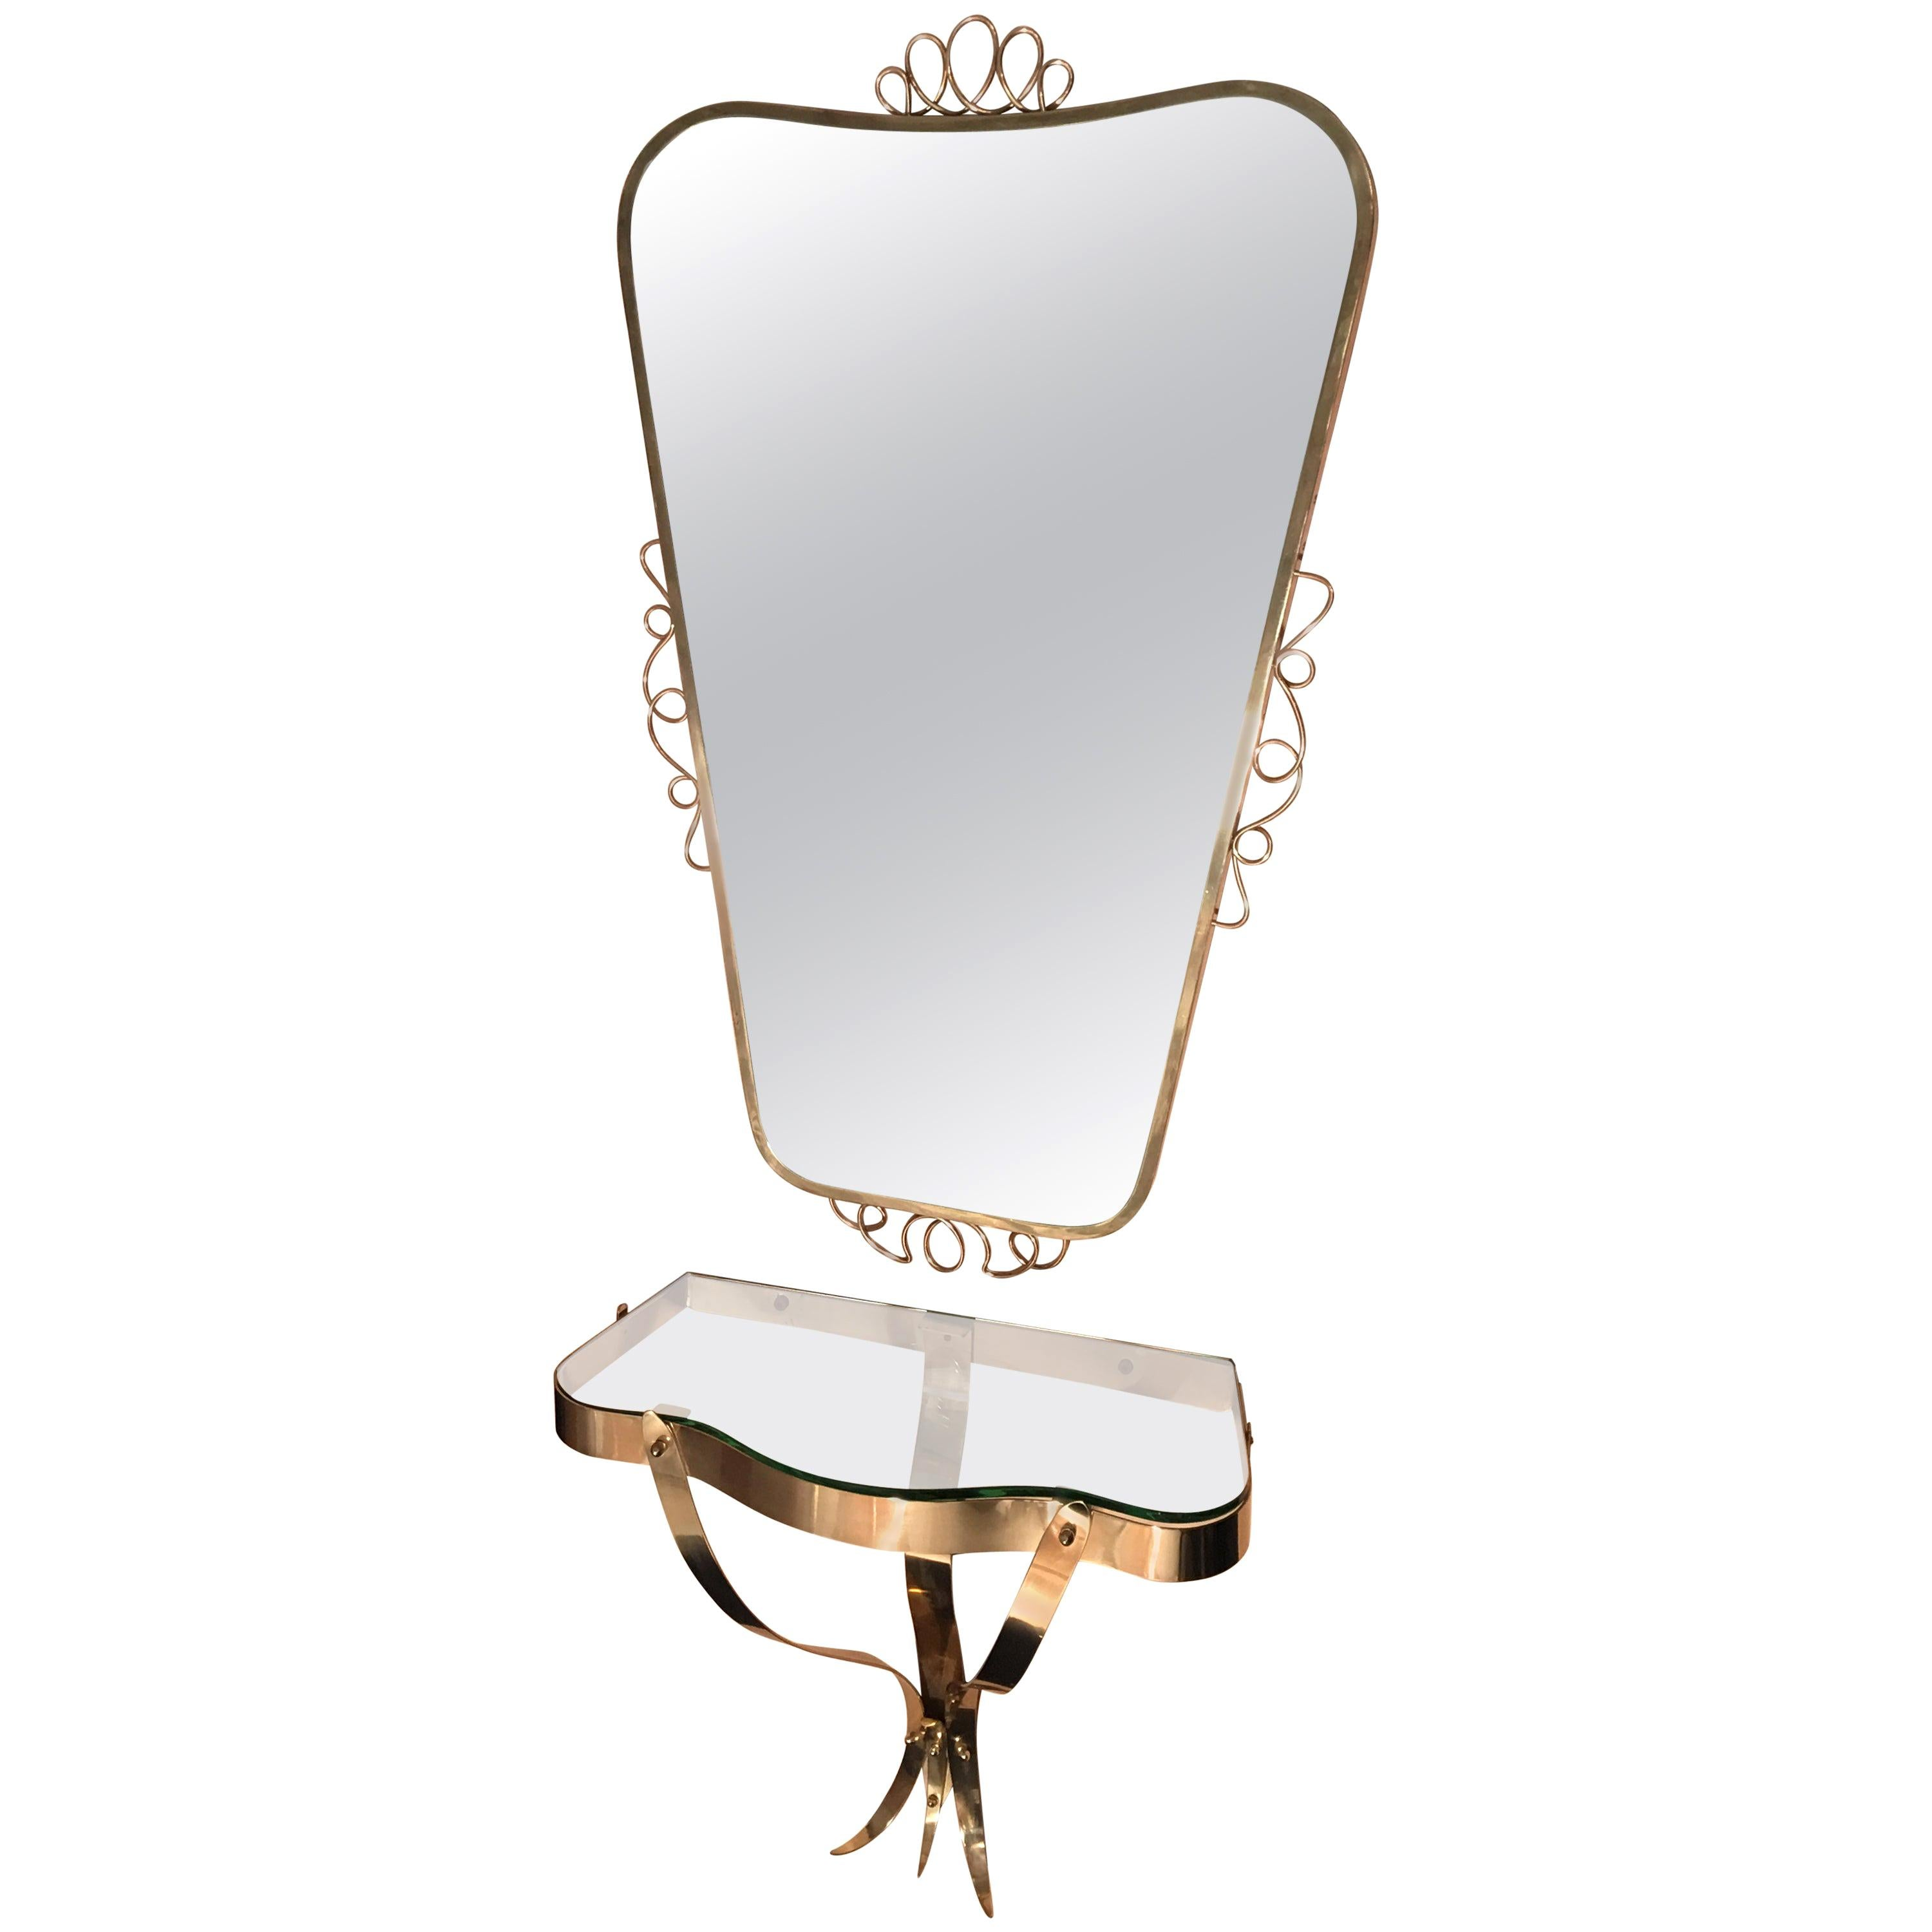 Brass Mirror with Small Console Table in the Style of Gio Ponti, 1950s